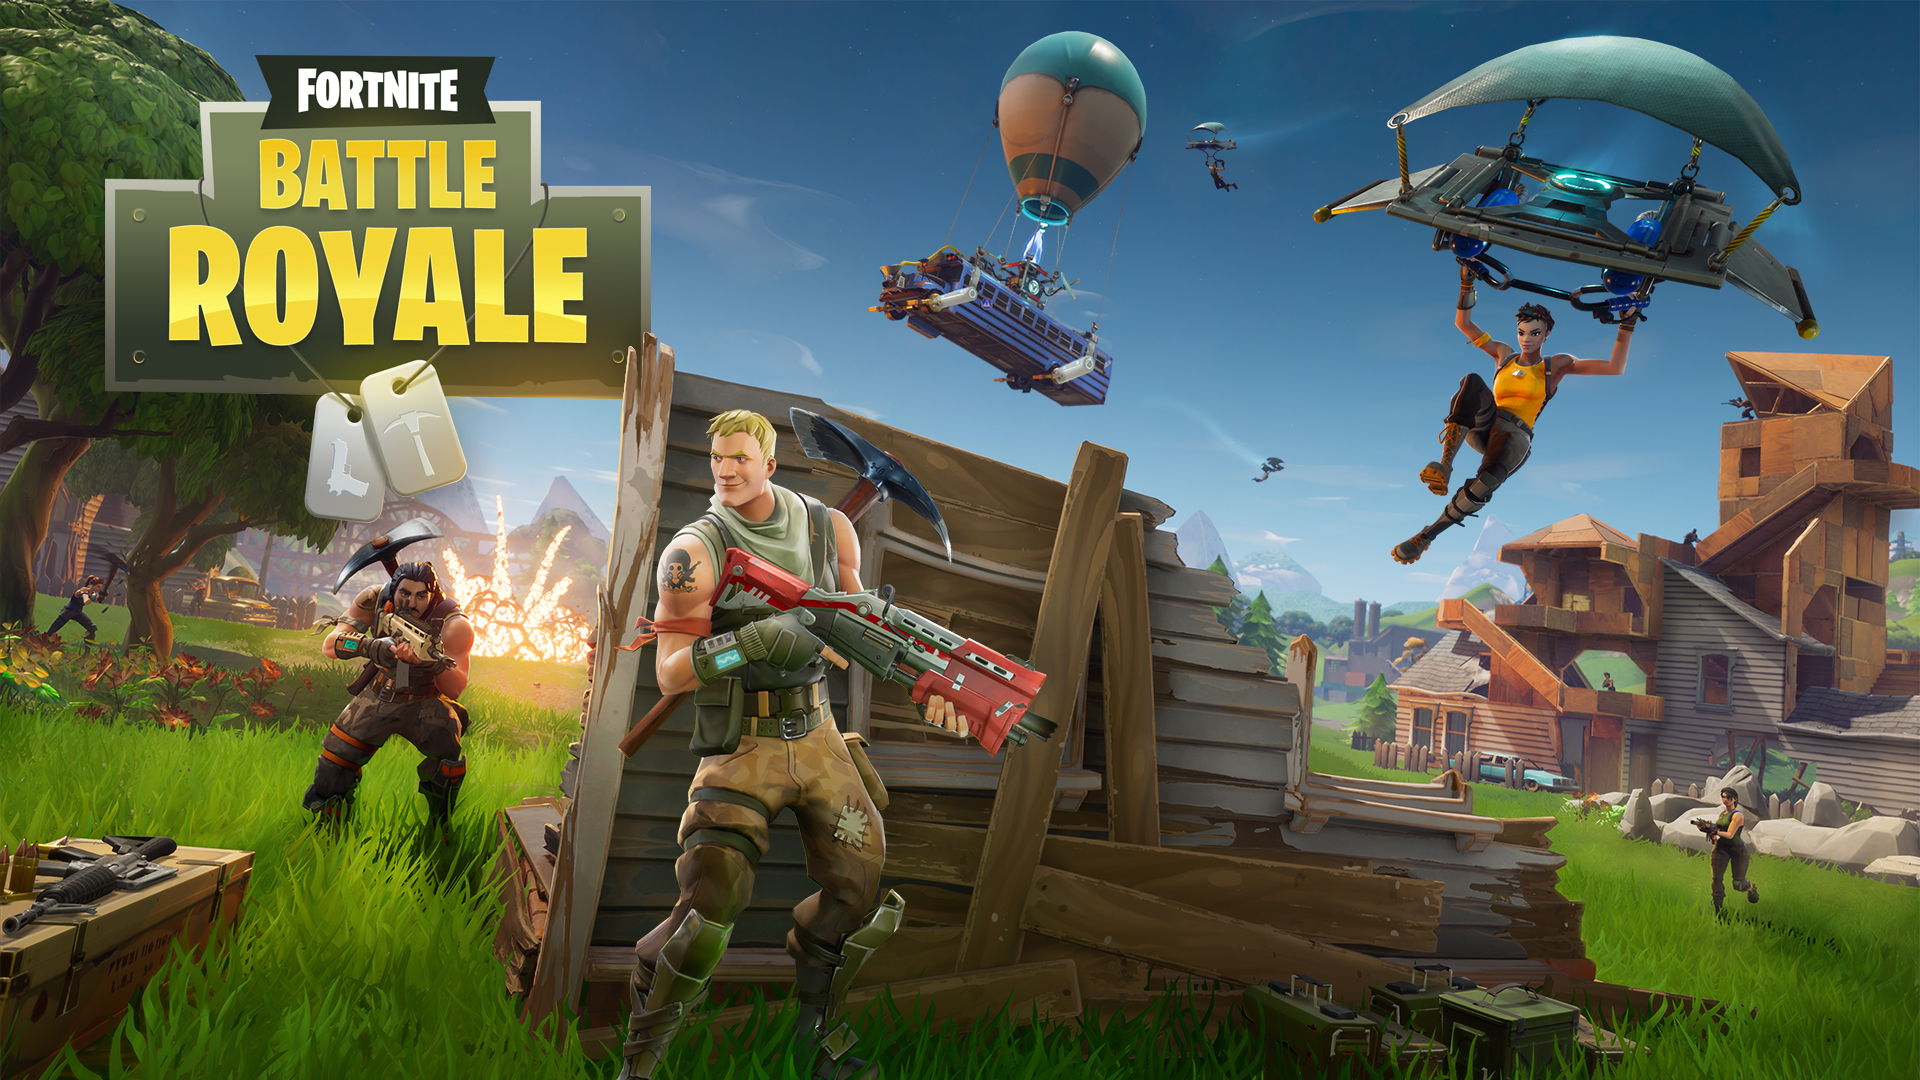 Fortnite%2Fblog%2Fpatch-v-1-6---fortnite-battle-royale%2FFortnite_BR_Key-Art_w-Logo_ENG-1920x1080-3e2ce1453476b725fa59e7aeb6ecb90e4b75a0df.jpg